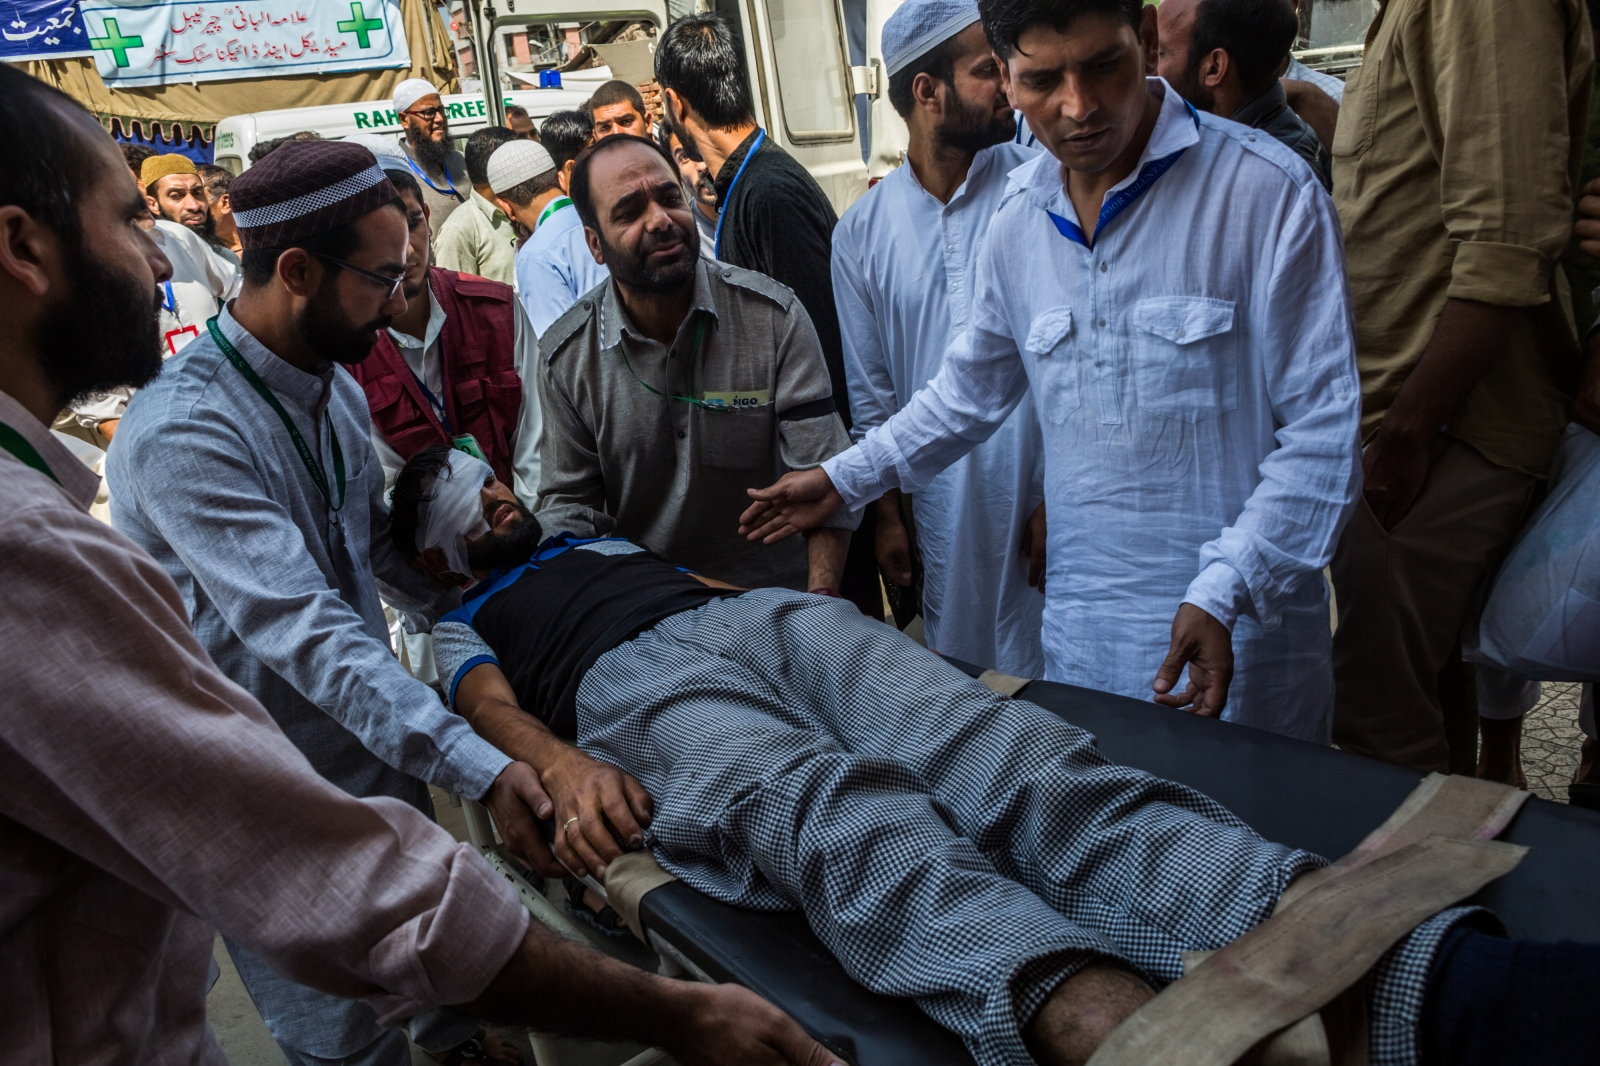 Kashmiri hospital volunteers carry a man injured by pellets from an ambulance outside the emergency department at the Shri Maharaja Hari Singh (SMHS) hospital, during a strict curfew on Eid-al-Adha, one of the most important religious festivals in the Muslim calendar, in Srinagar on September 13, 2016.